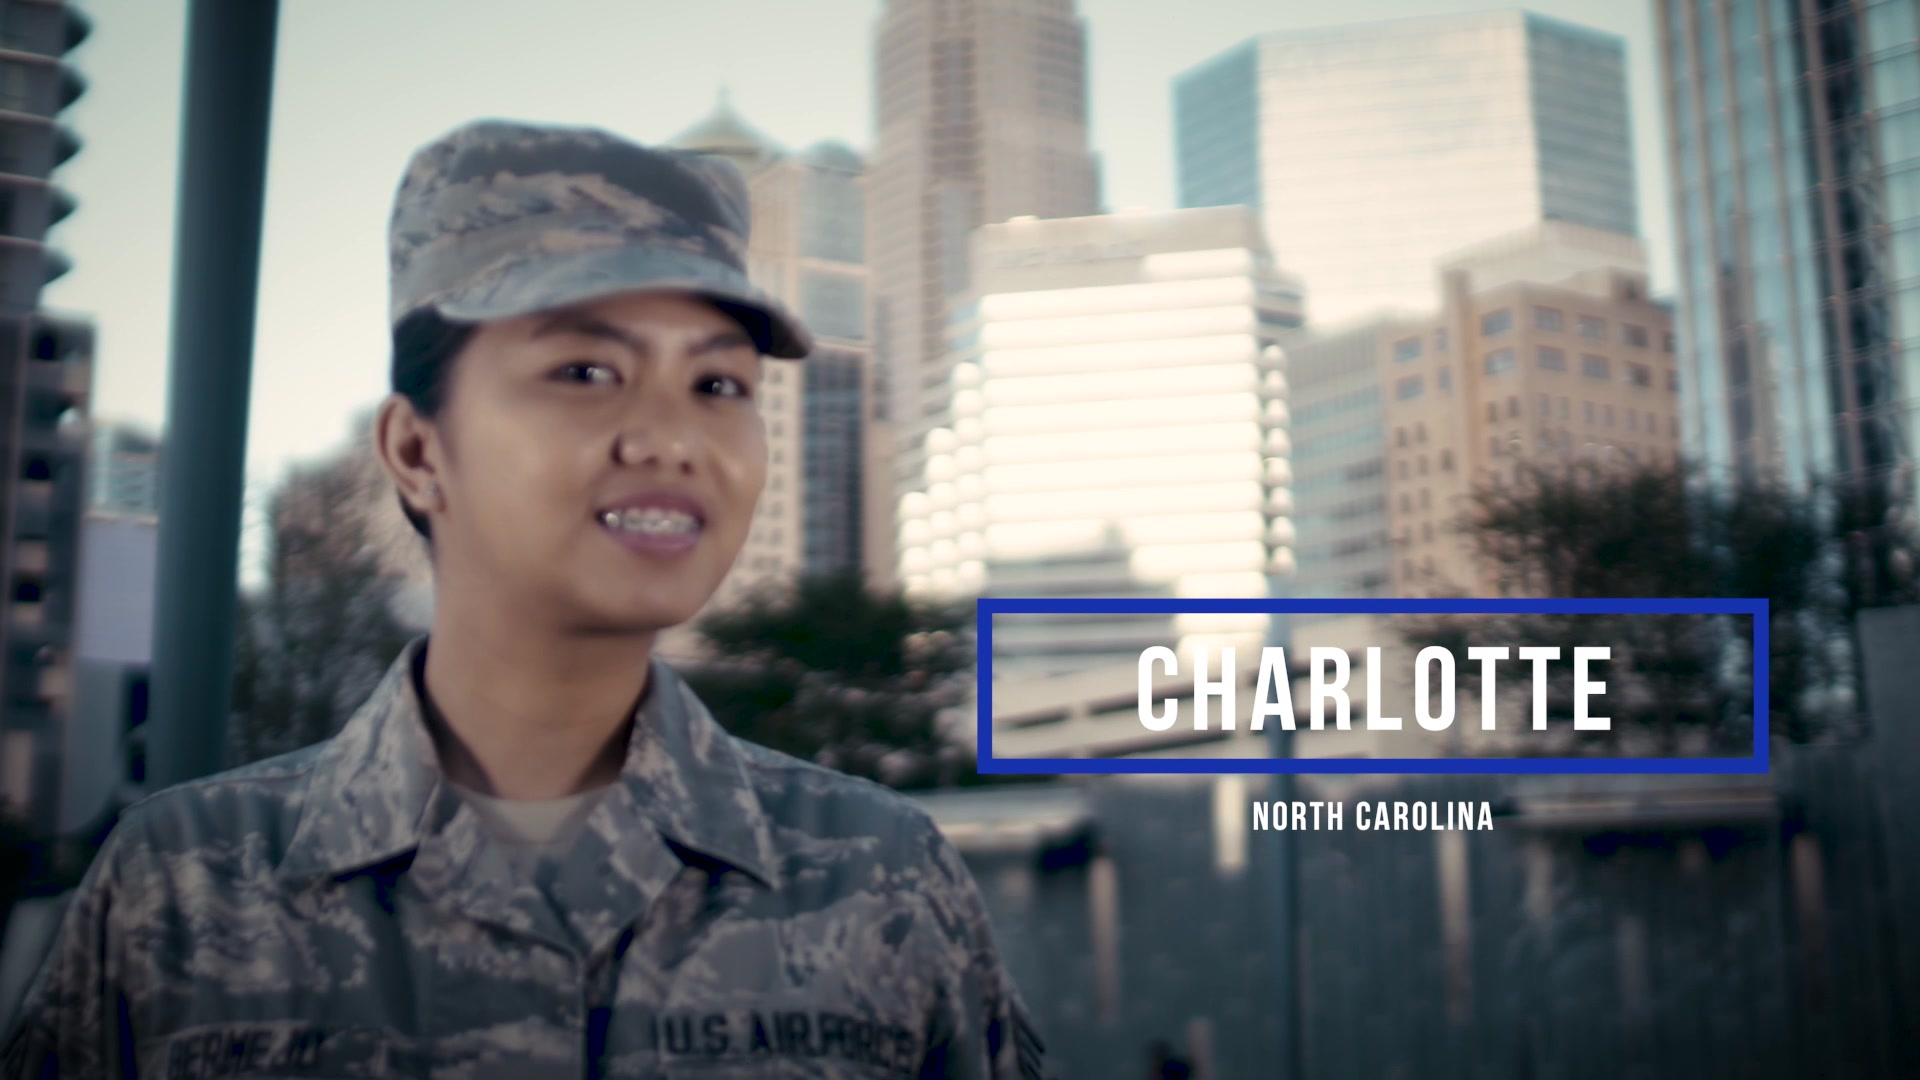 United States Air Force Senior Airman Krizelle Bermejo calls Charlotte home and is a Financial Management Technician at Offutt AFB, Nebraska. 